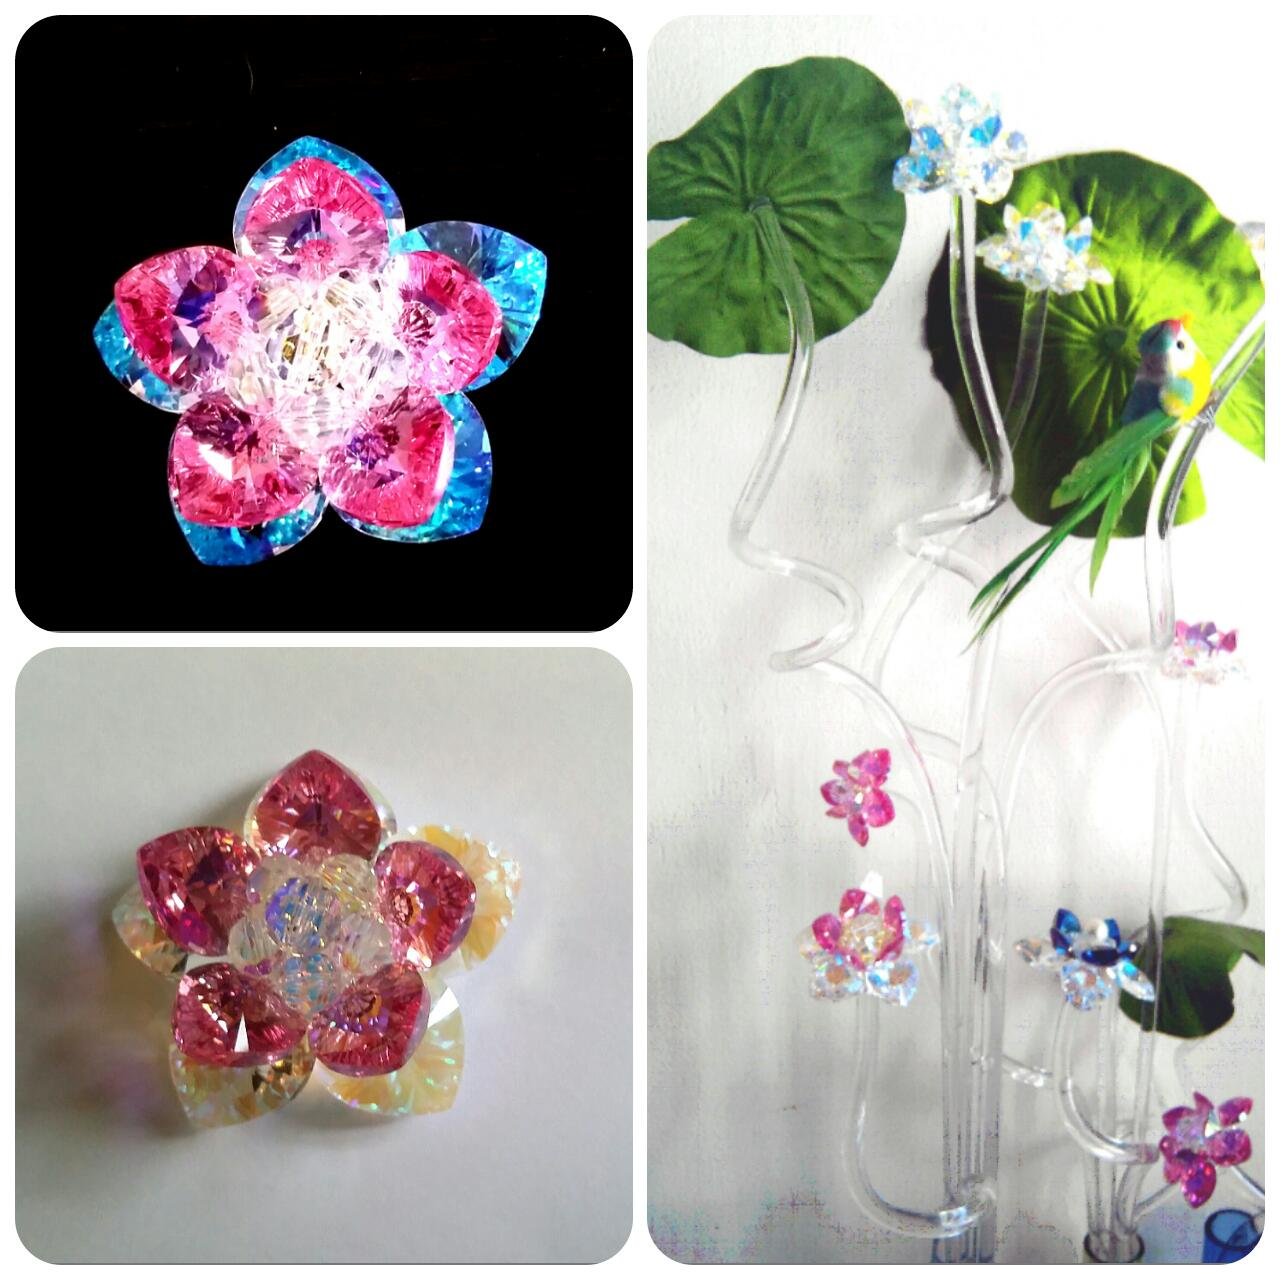 Sacred Crystal Lotus Flowers - Sample Display - Made of Crystals From  Swarovski - Austria (A/B)S